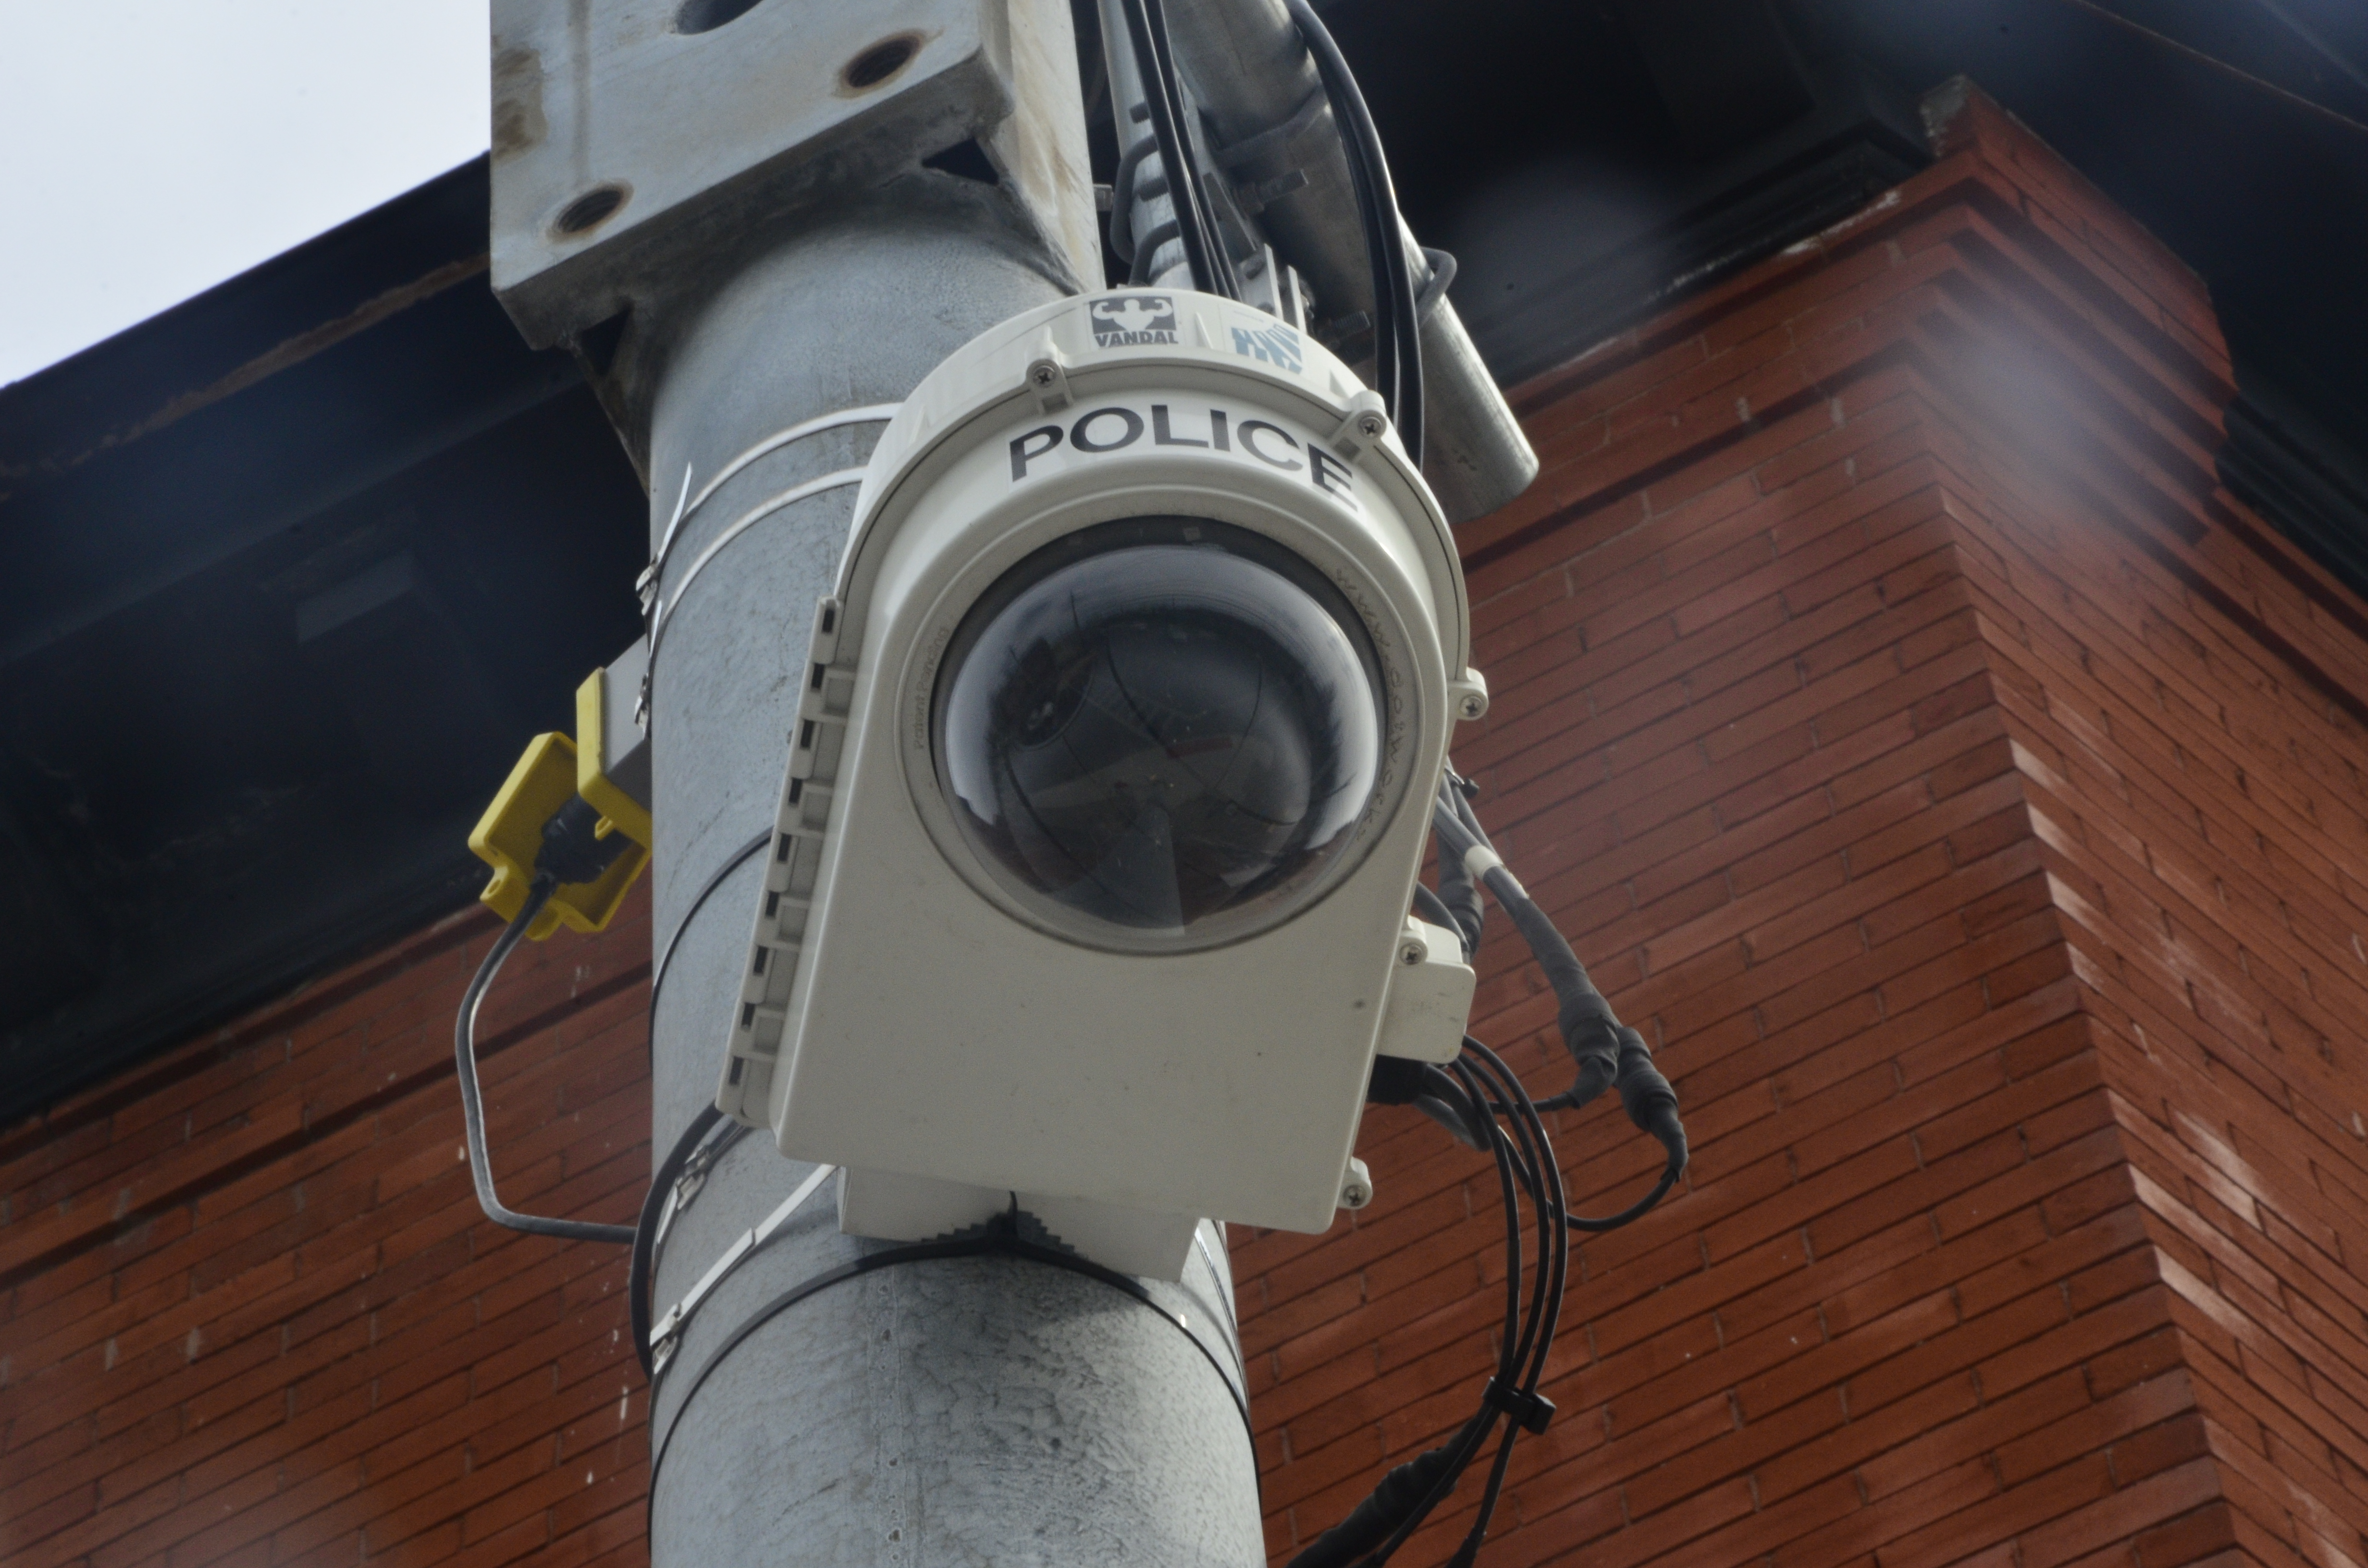 surveillance cameras from the 70